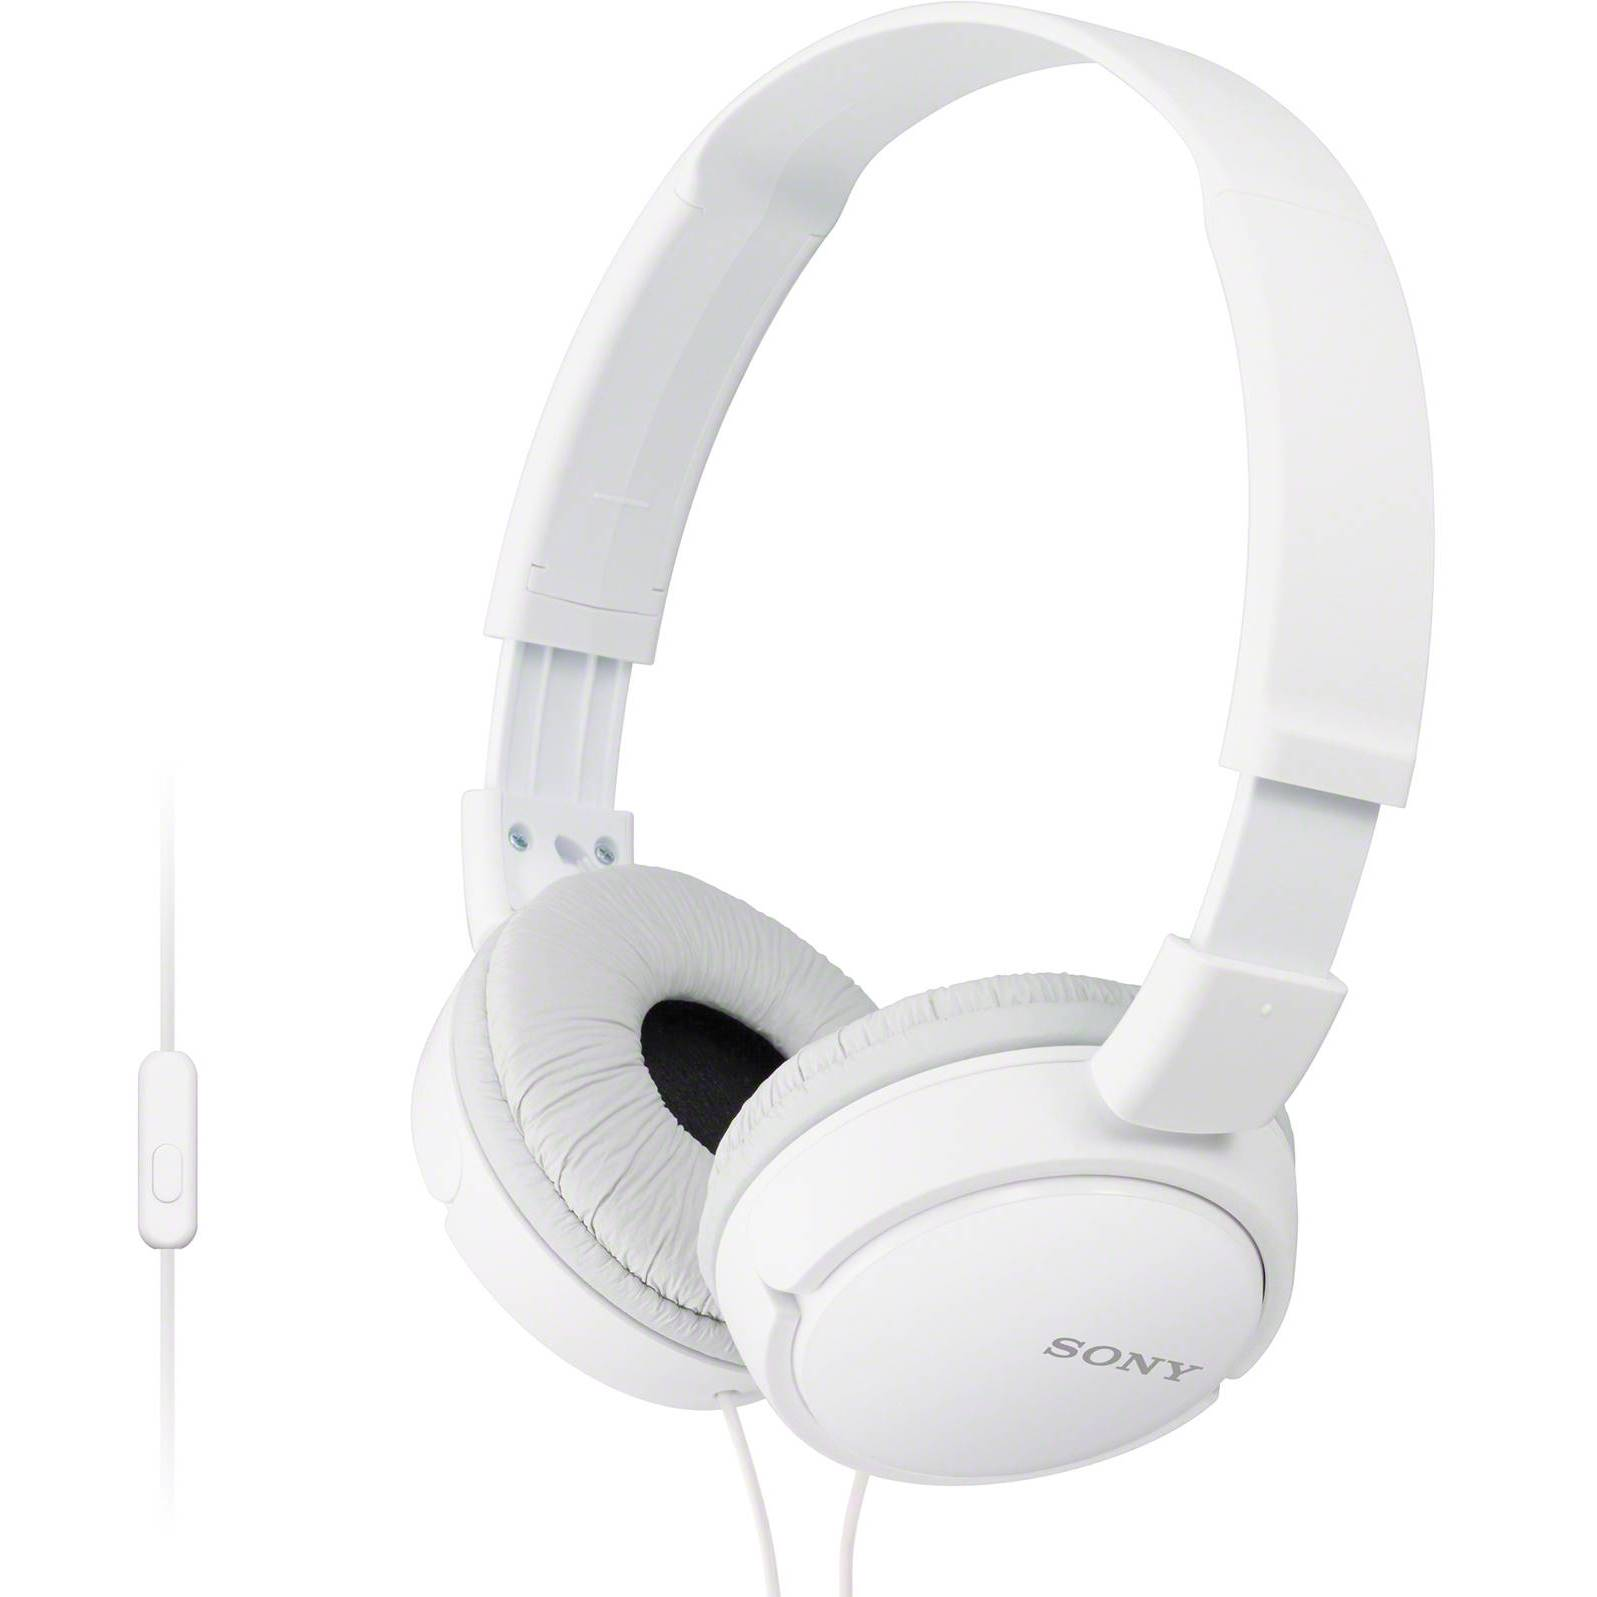 Headset with microphone for android phone